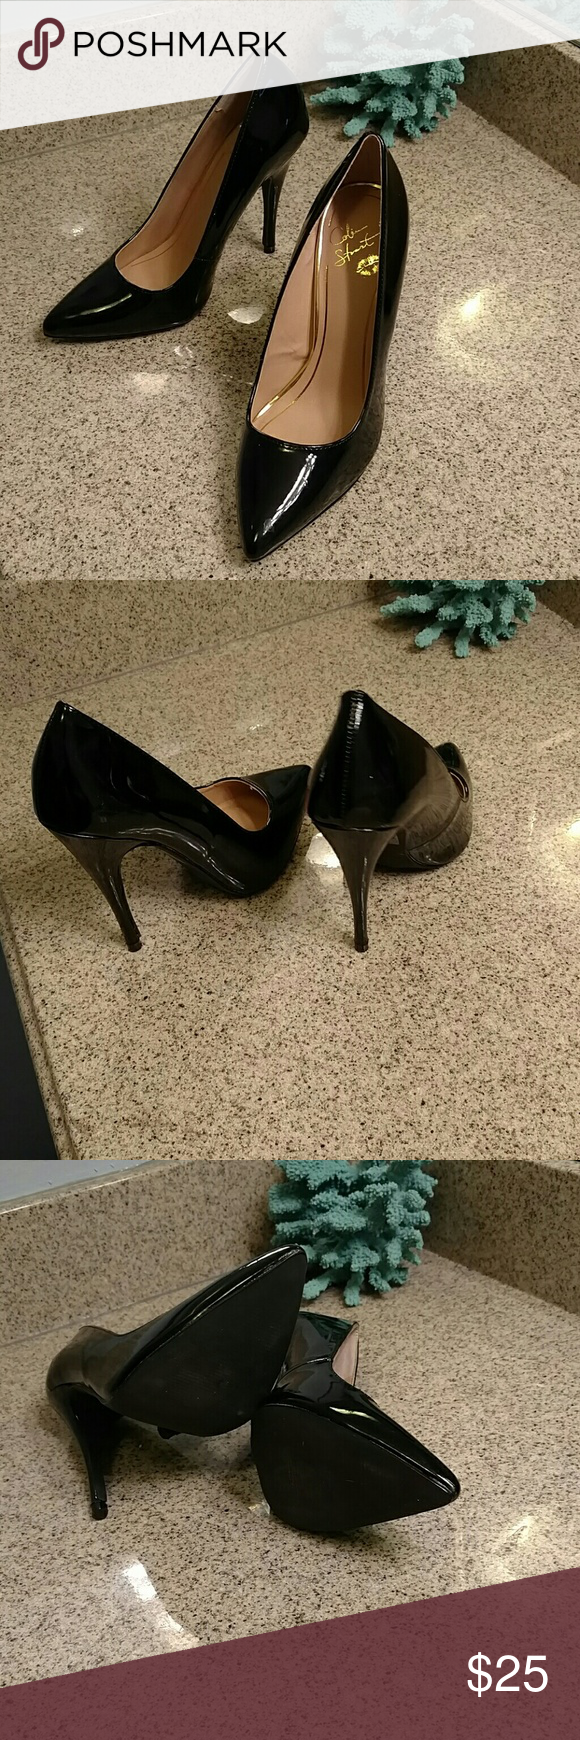 Shoes Wore one time!!! Beautiful black high heel shoes Colin Stuart Shoes Heels